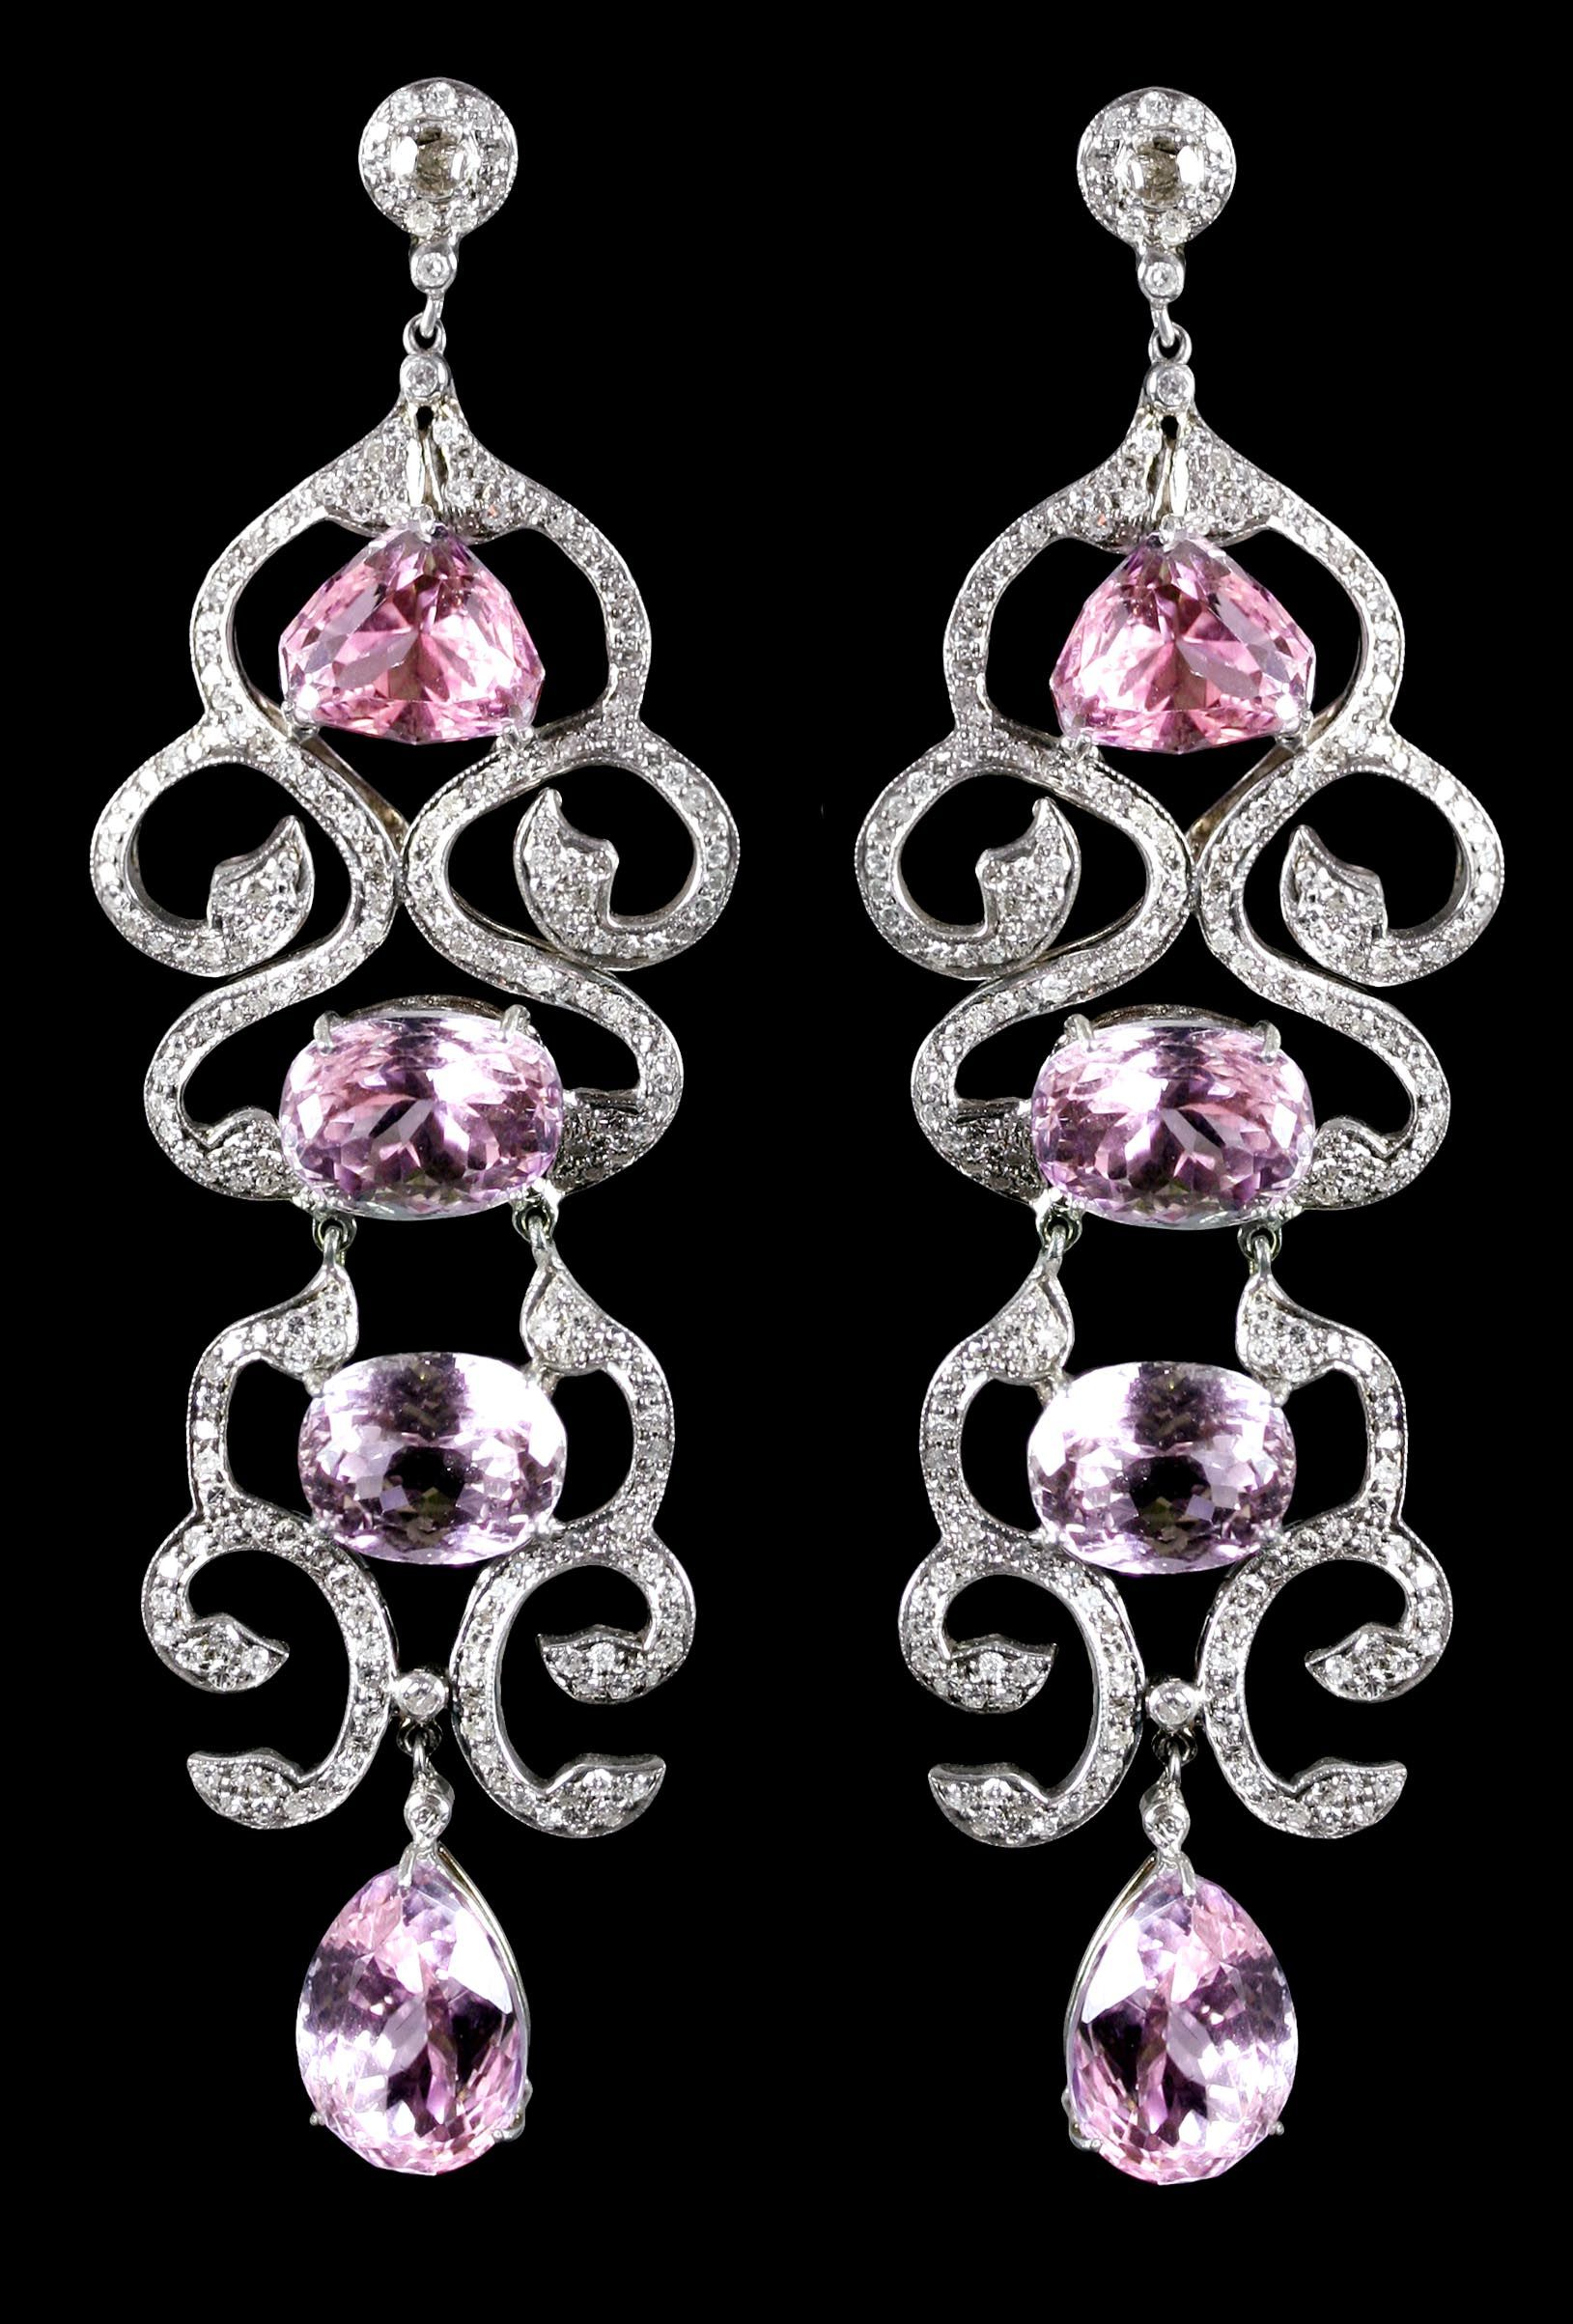 maja dubrul jewelry flourite ii products ef gabrielle kunzite earrings